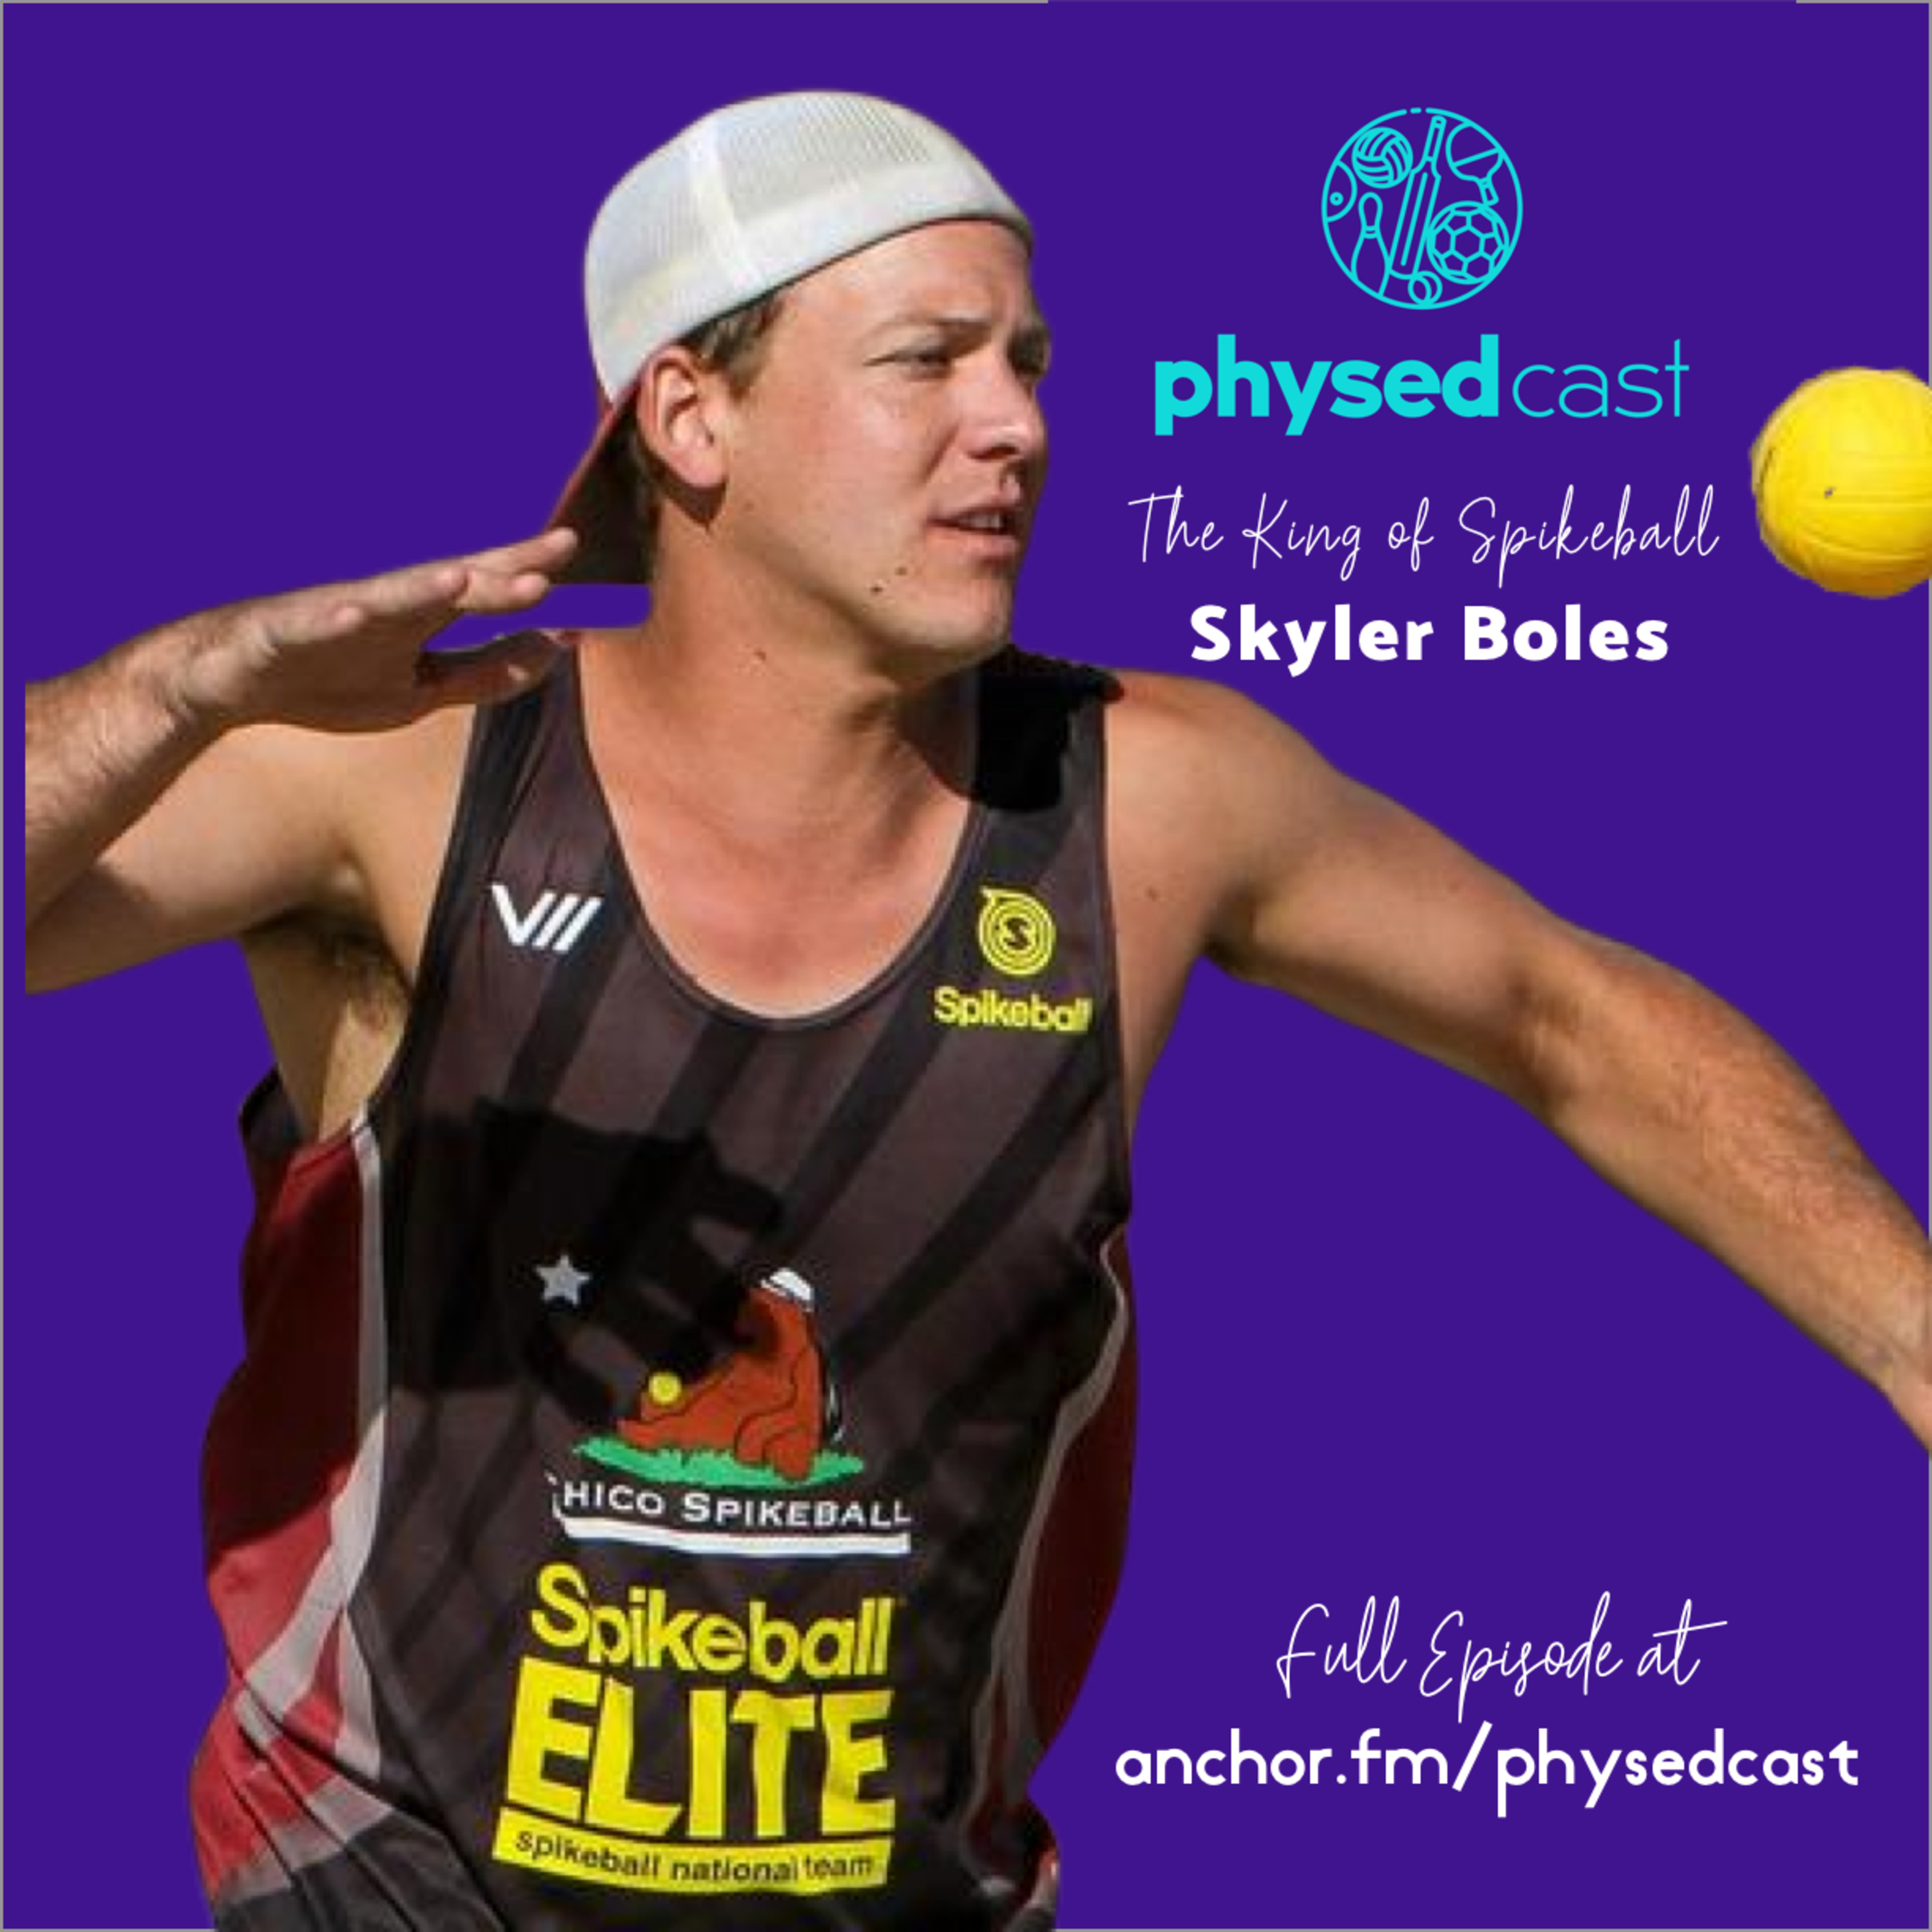 The King of Spikeball | Skyler Boles